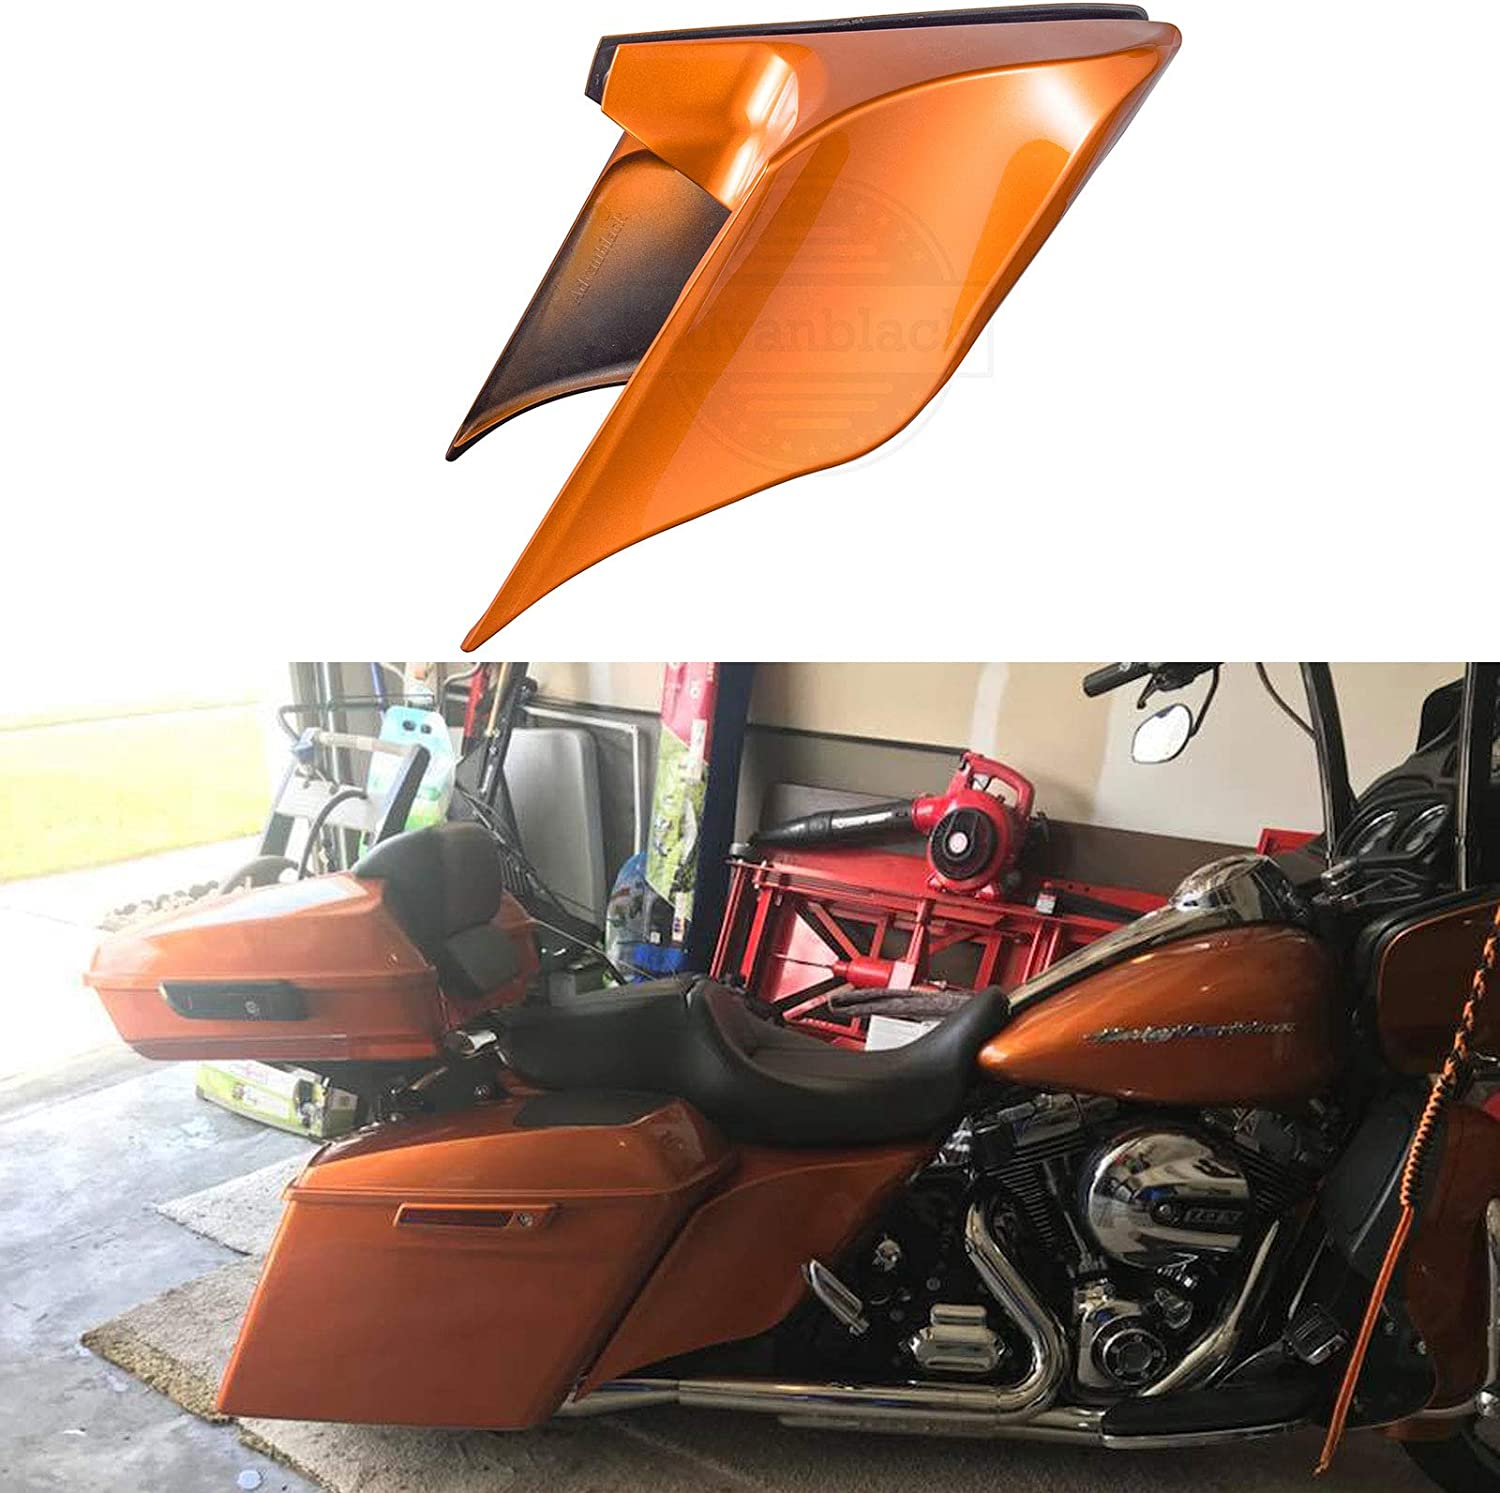 Hard Candy Hot Rod Red Flake 4 1//2 Stretched Rear Fender Extension Filler Kit Flare Fit for Harley Touring Road King Special Street Glide Special Road Glide Special 2018